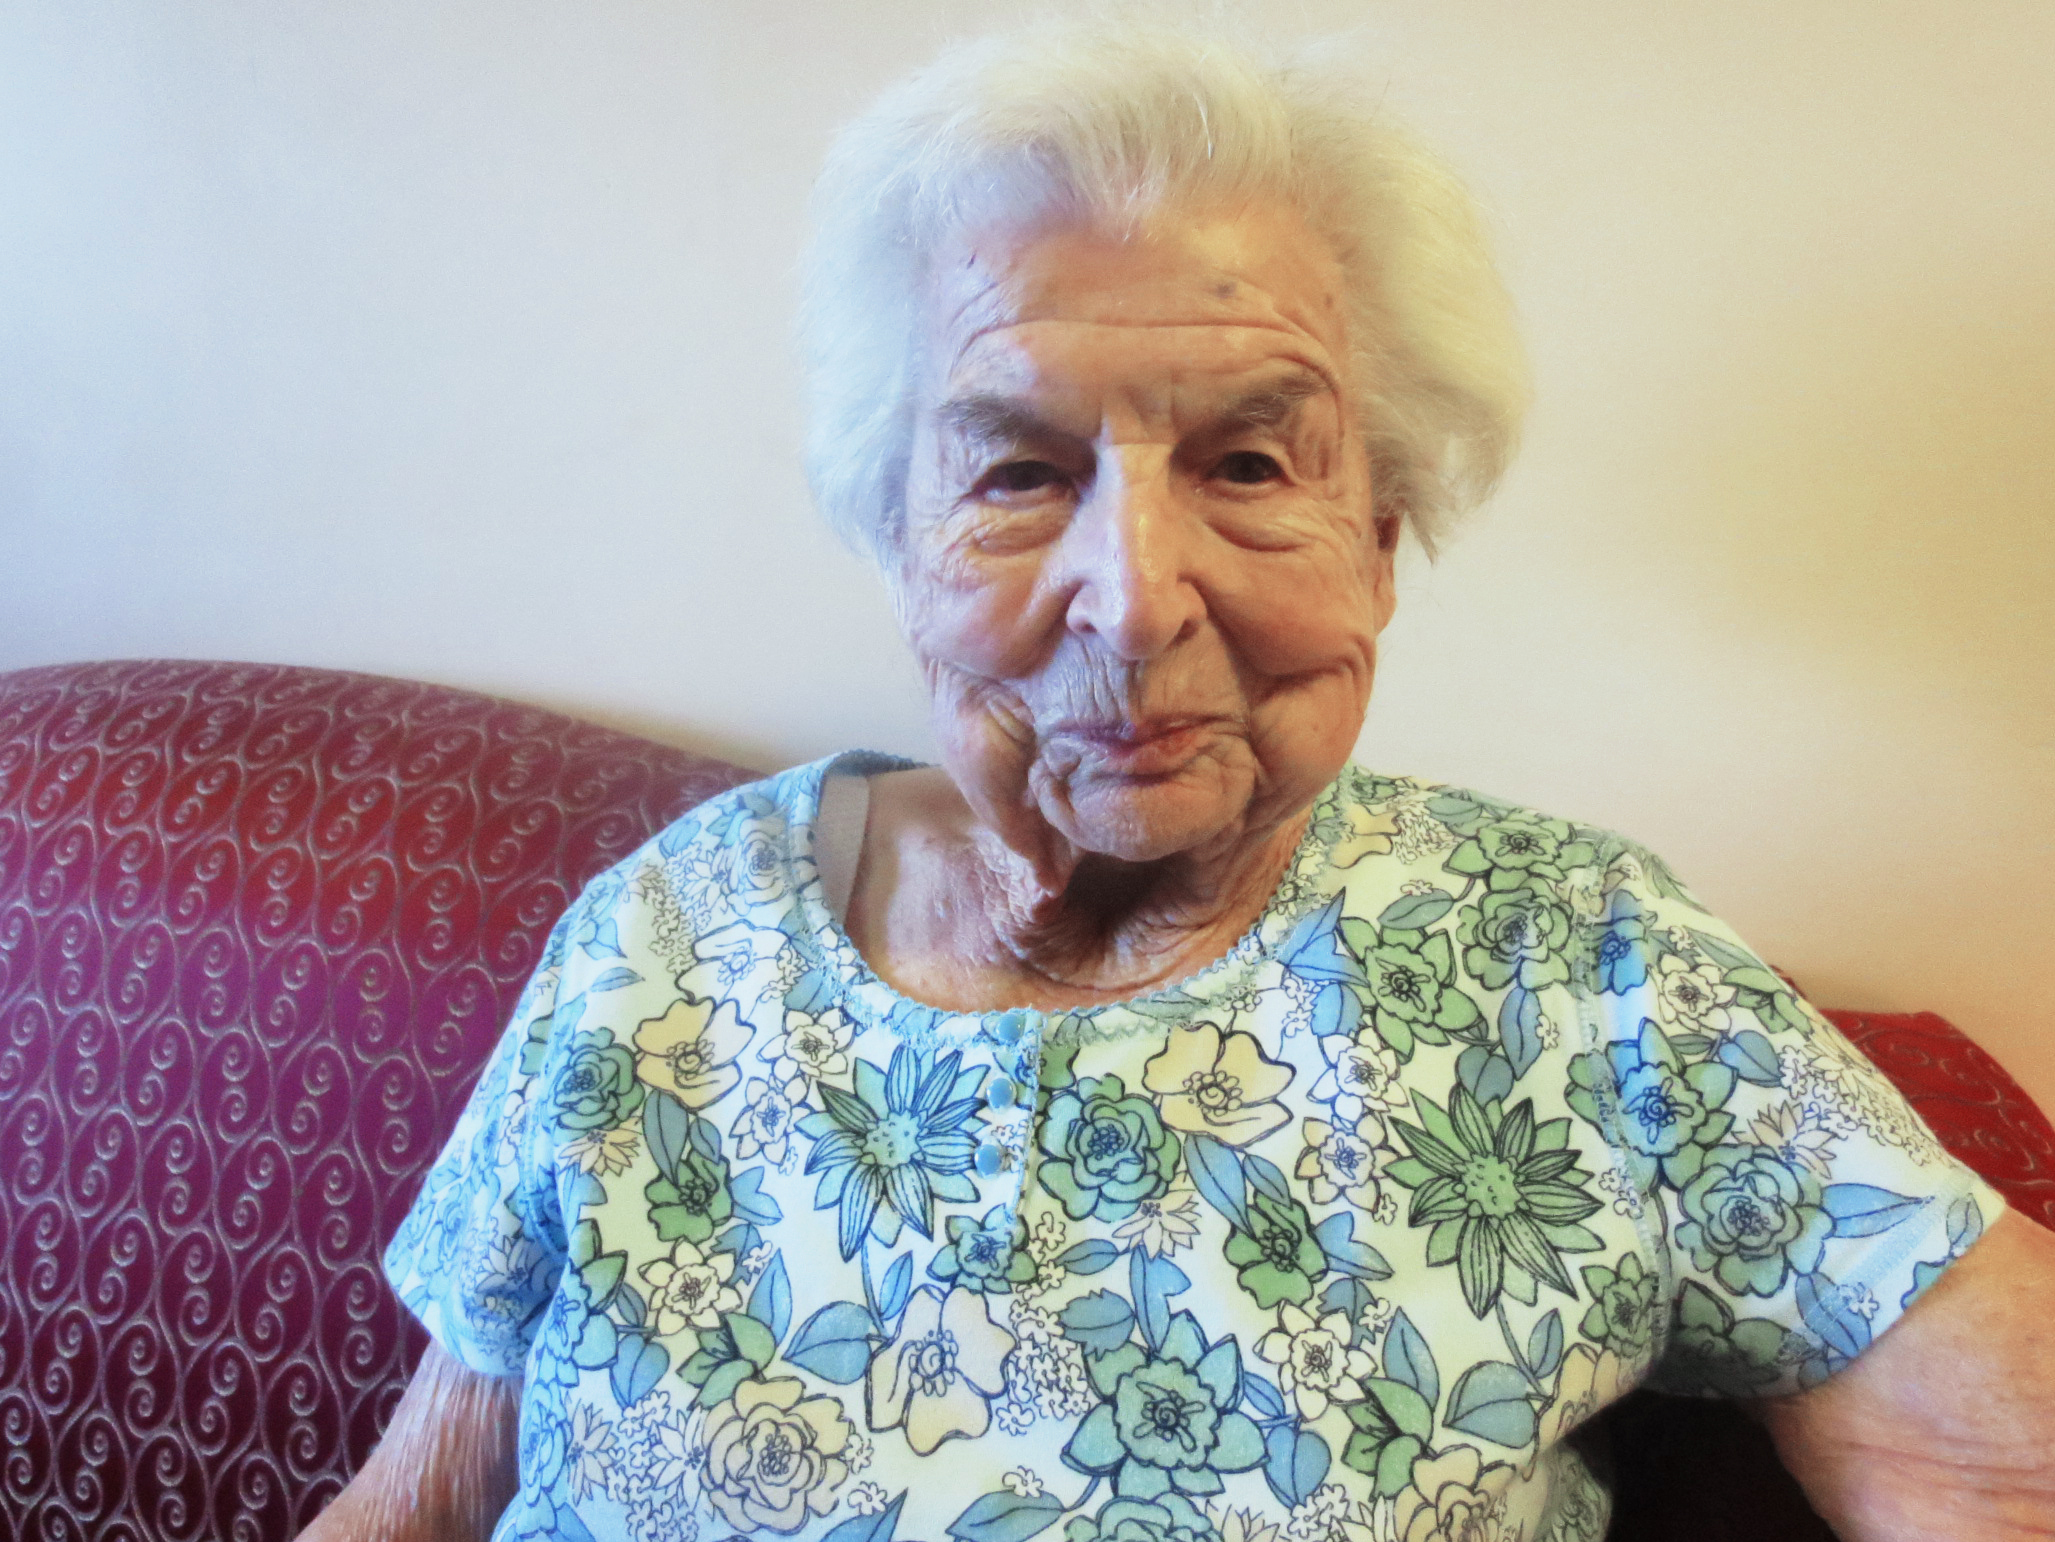 At 102, Reflections On Race And The End Of Life